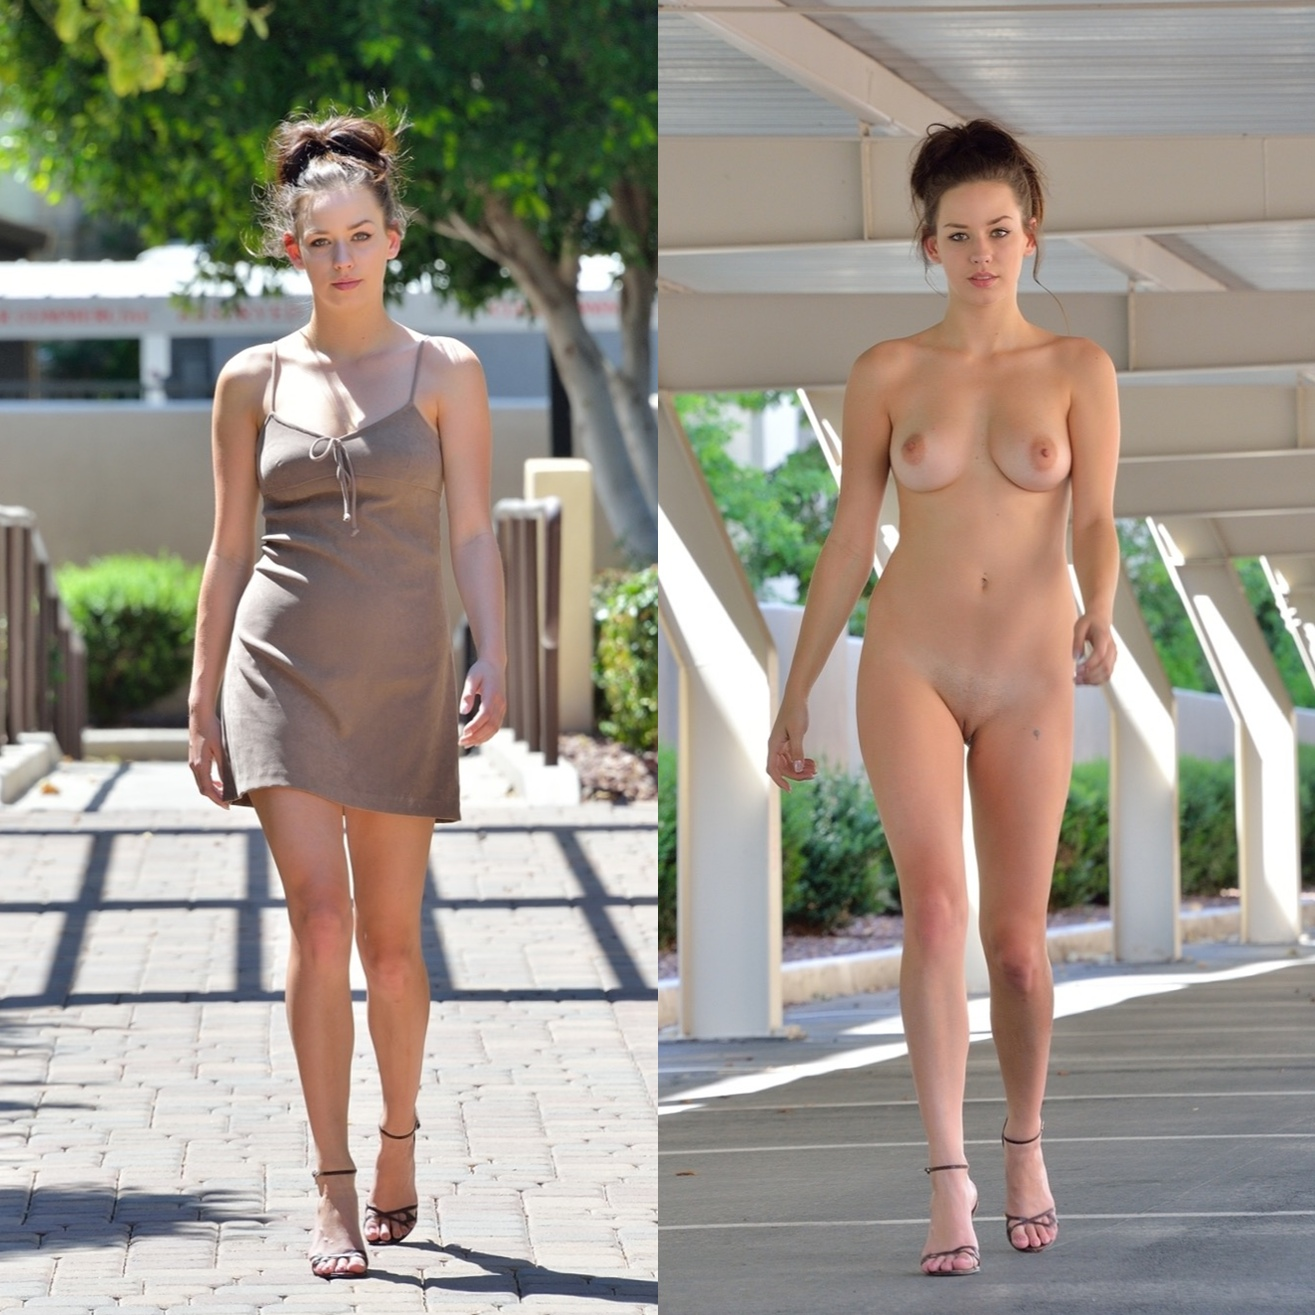 All the naked looks